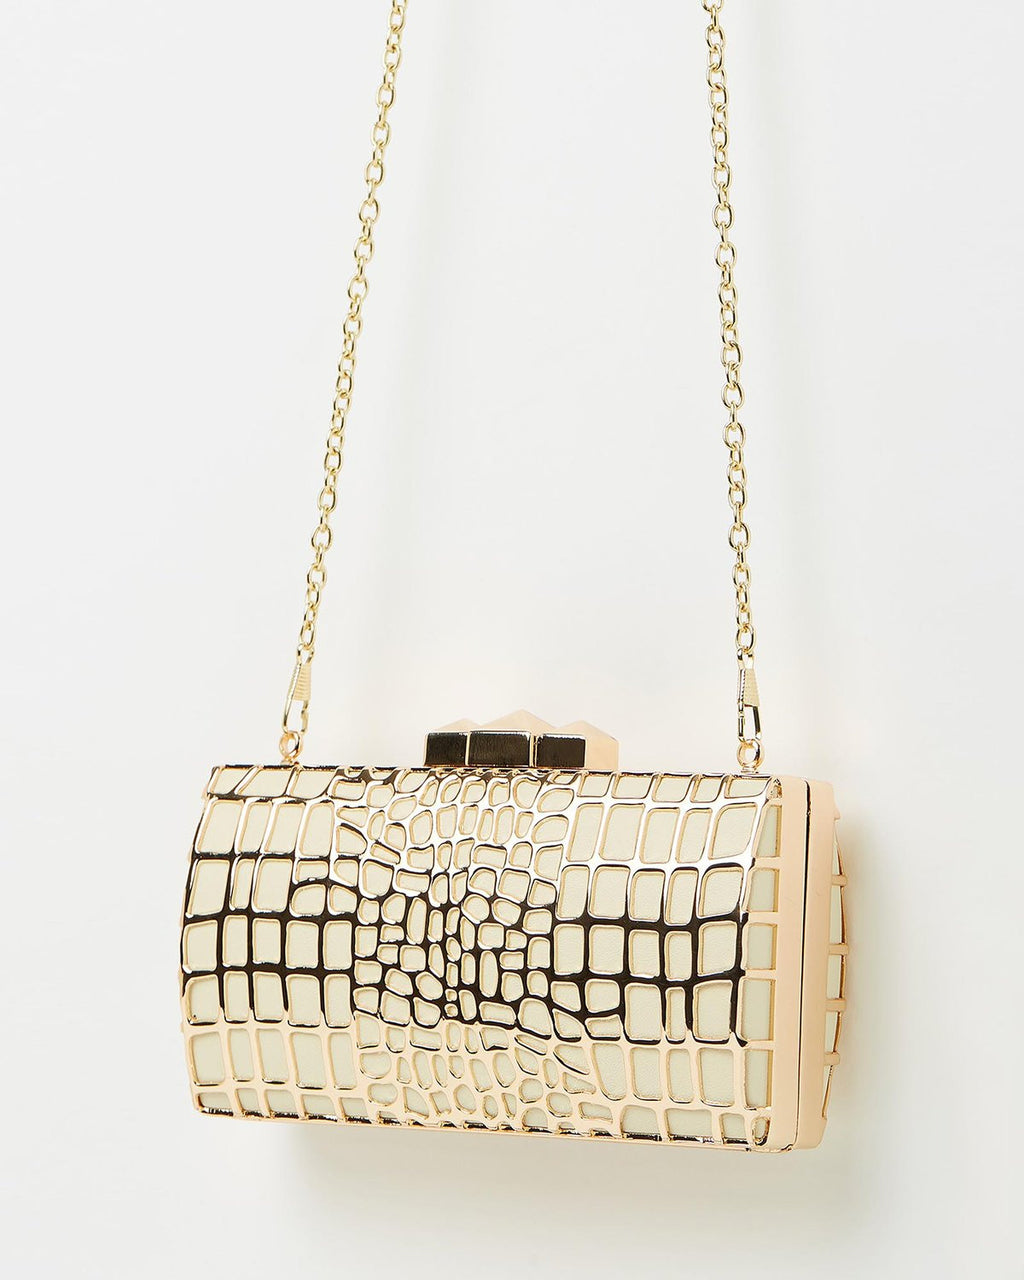 Izoa Elizabeth ivory and gold clutch